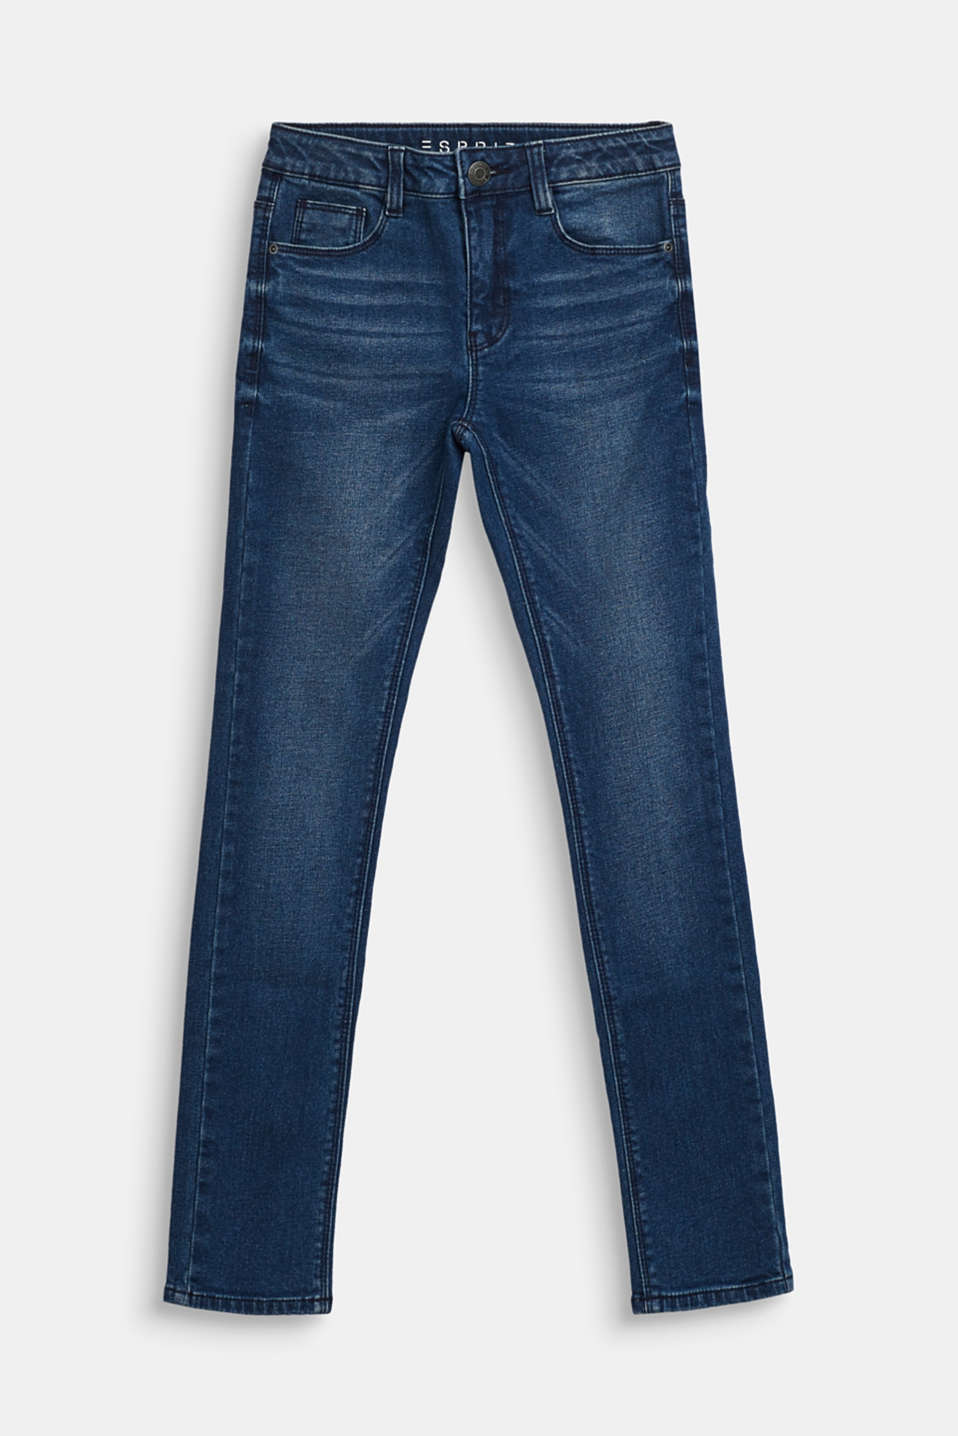 Esprit - Stretch jeans with soft lining